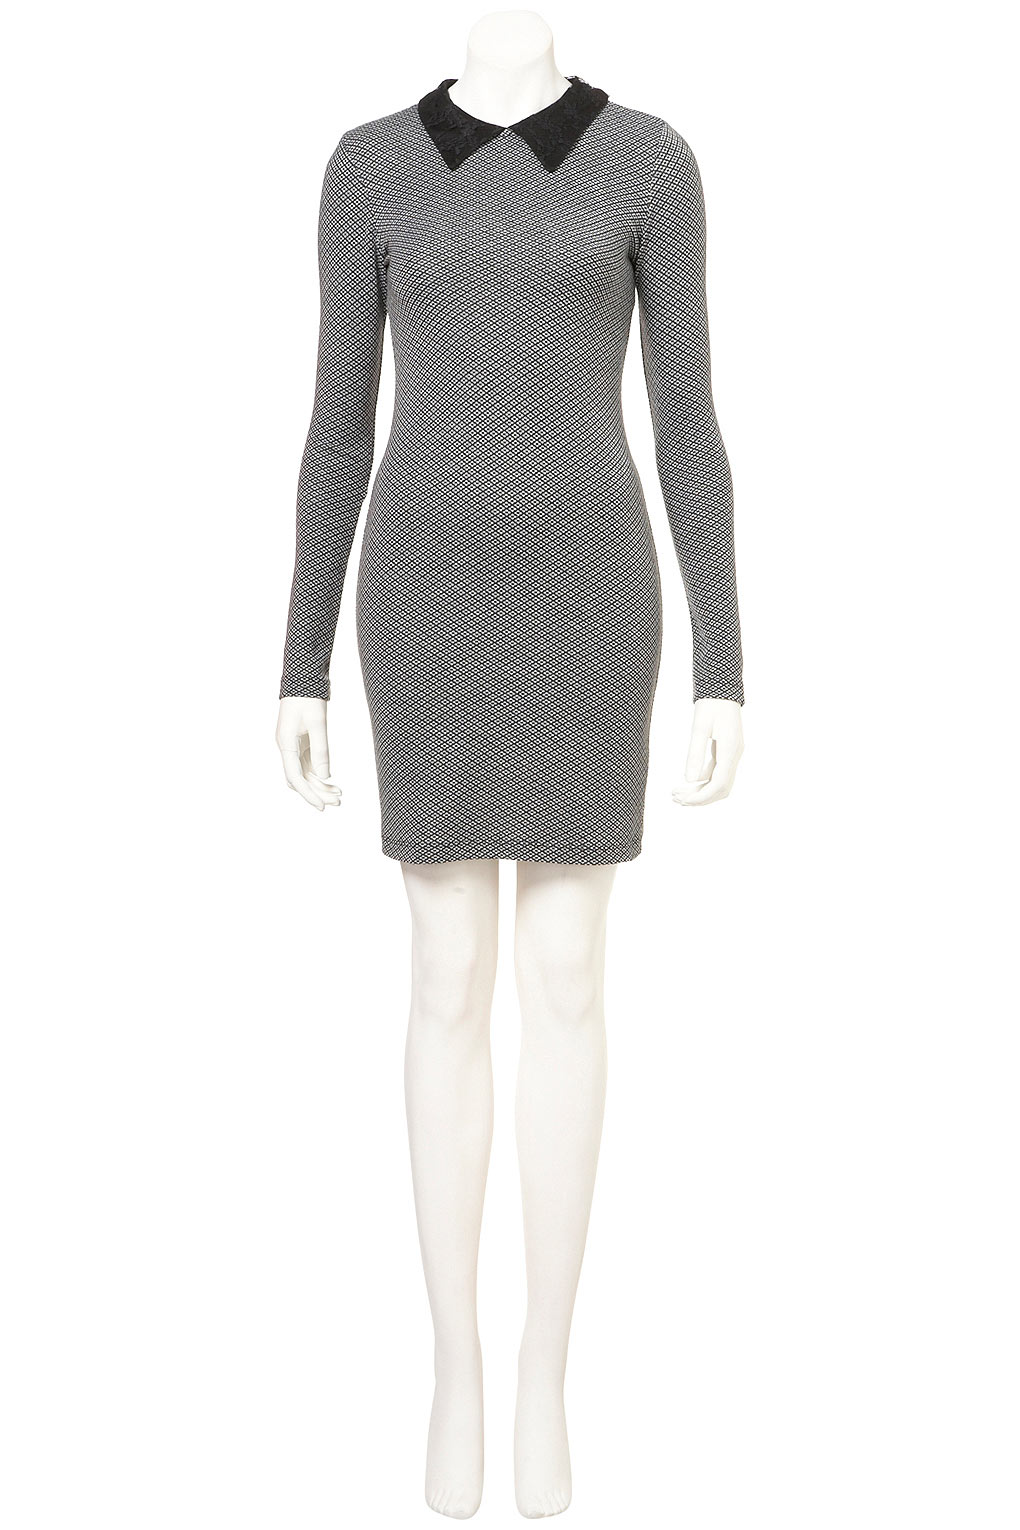 Topshop Lace Collar Tweed Print Dress In Grey Gray Lyst